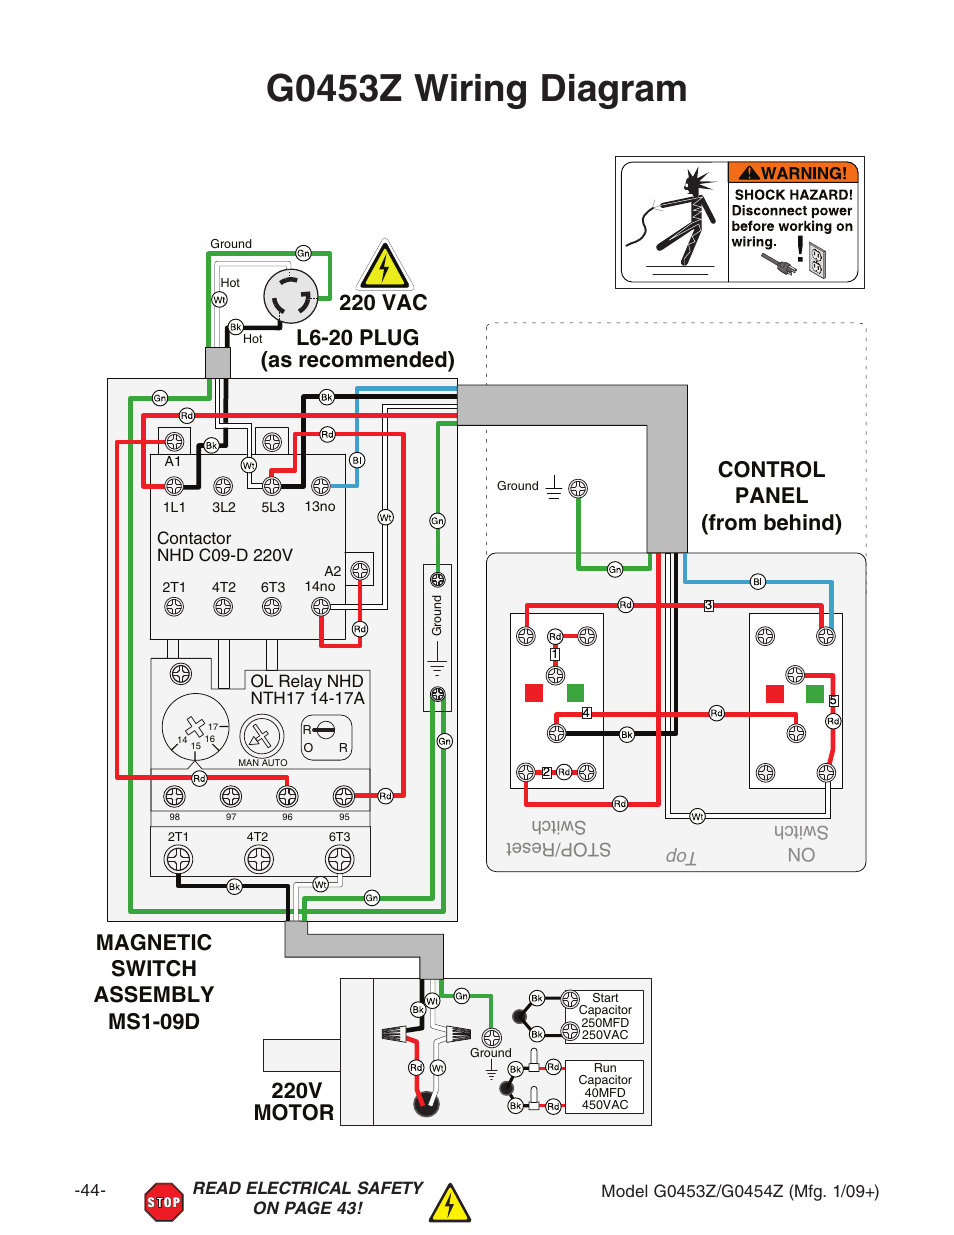 Motor Wiring Diagram For Grizzly Worksheet And 2000 Yamaha 600 Fan G0453z 220v G0453px User Manual Rh Manualsdir Com 2003 660